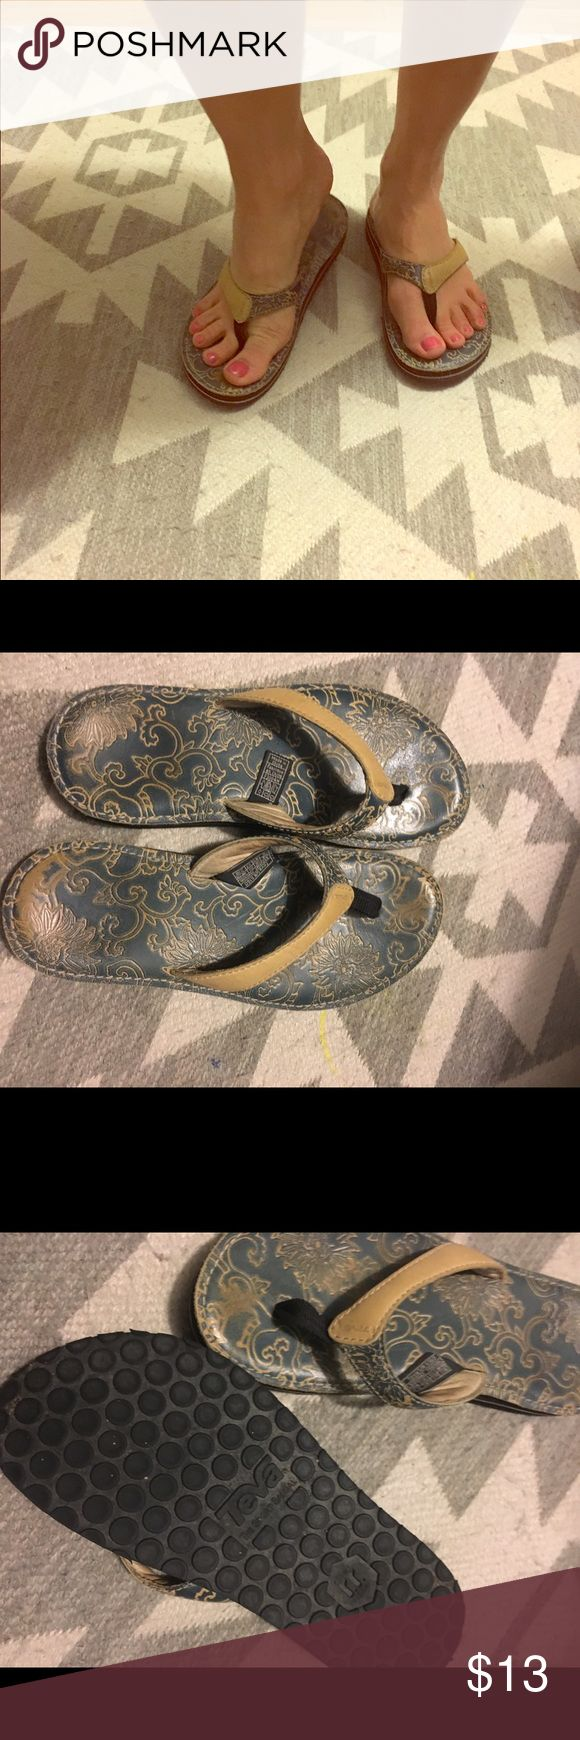 Teva Flip Flops Leather blue and tan Teva flip flops. They have been worn several times but are in great condition and very clean. Teva Shoes Sandals